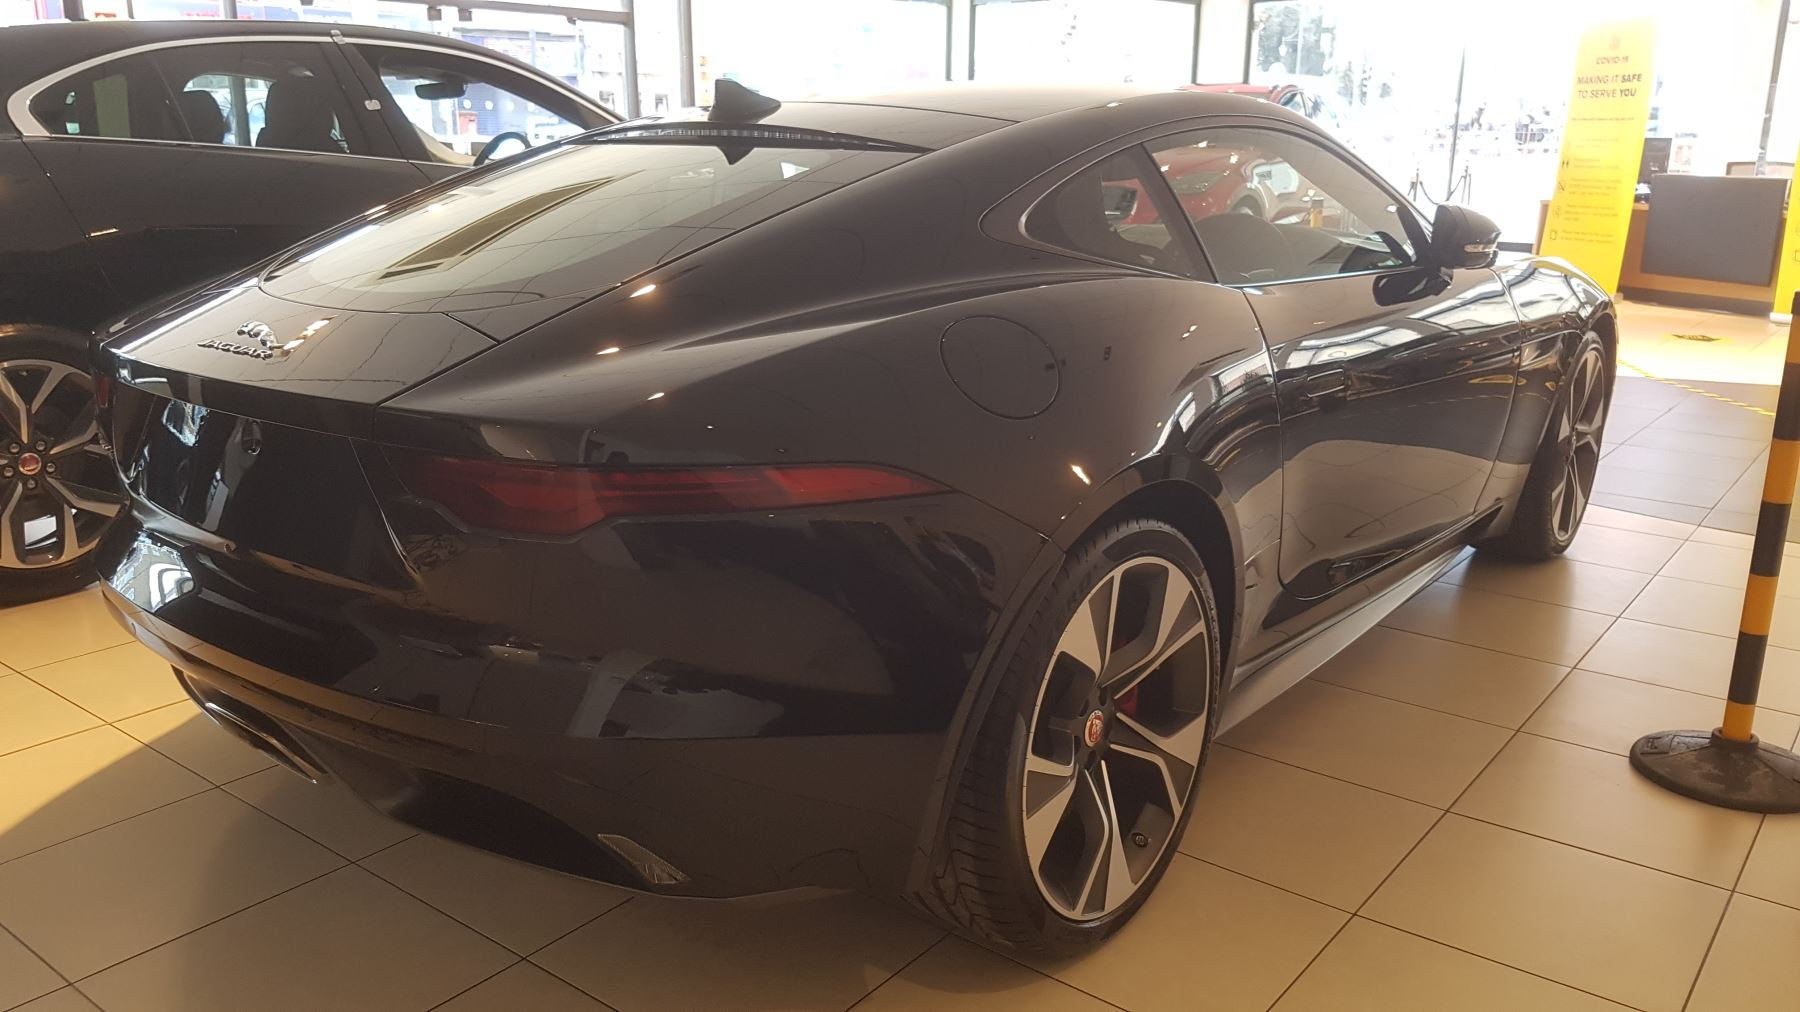 Jaguar F-TYPE 2.0 P300 First Edition SPECIAL EDITIONS image 4